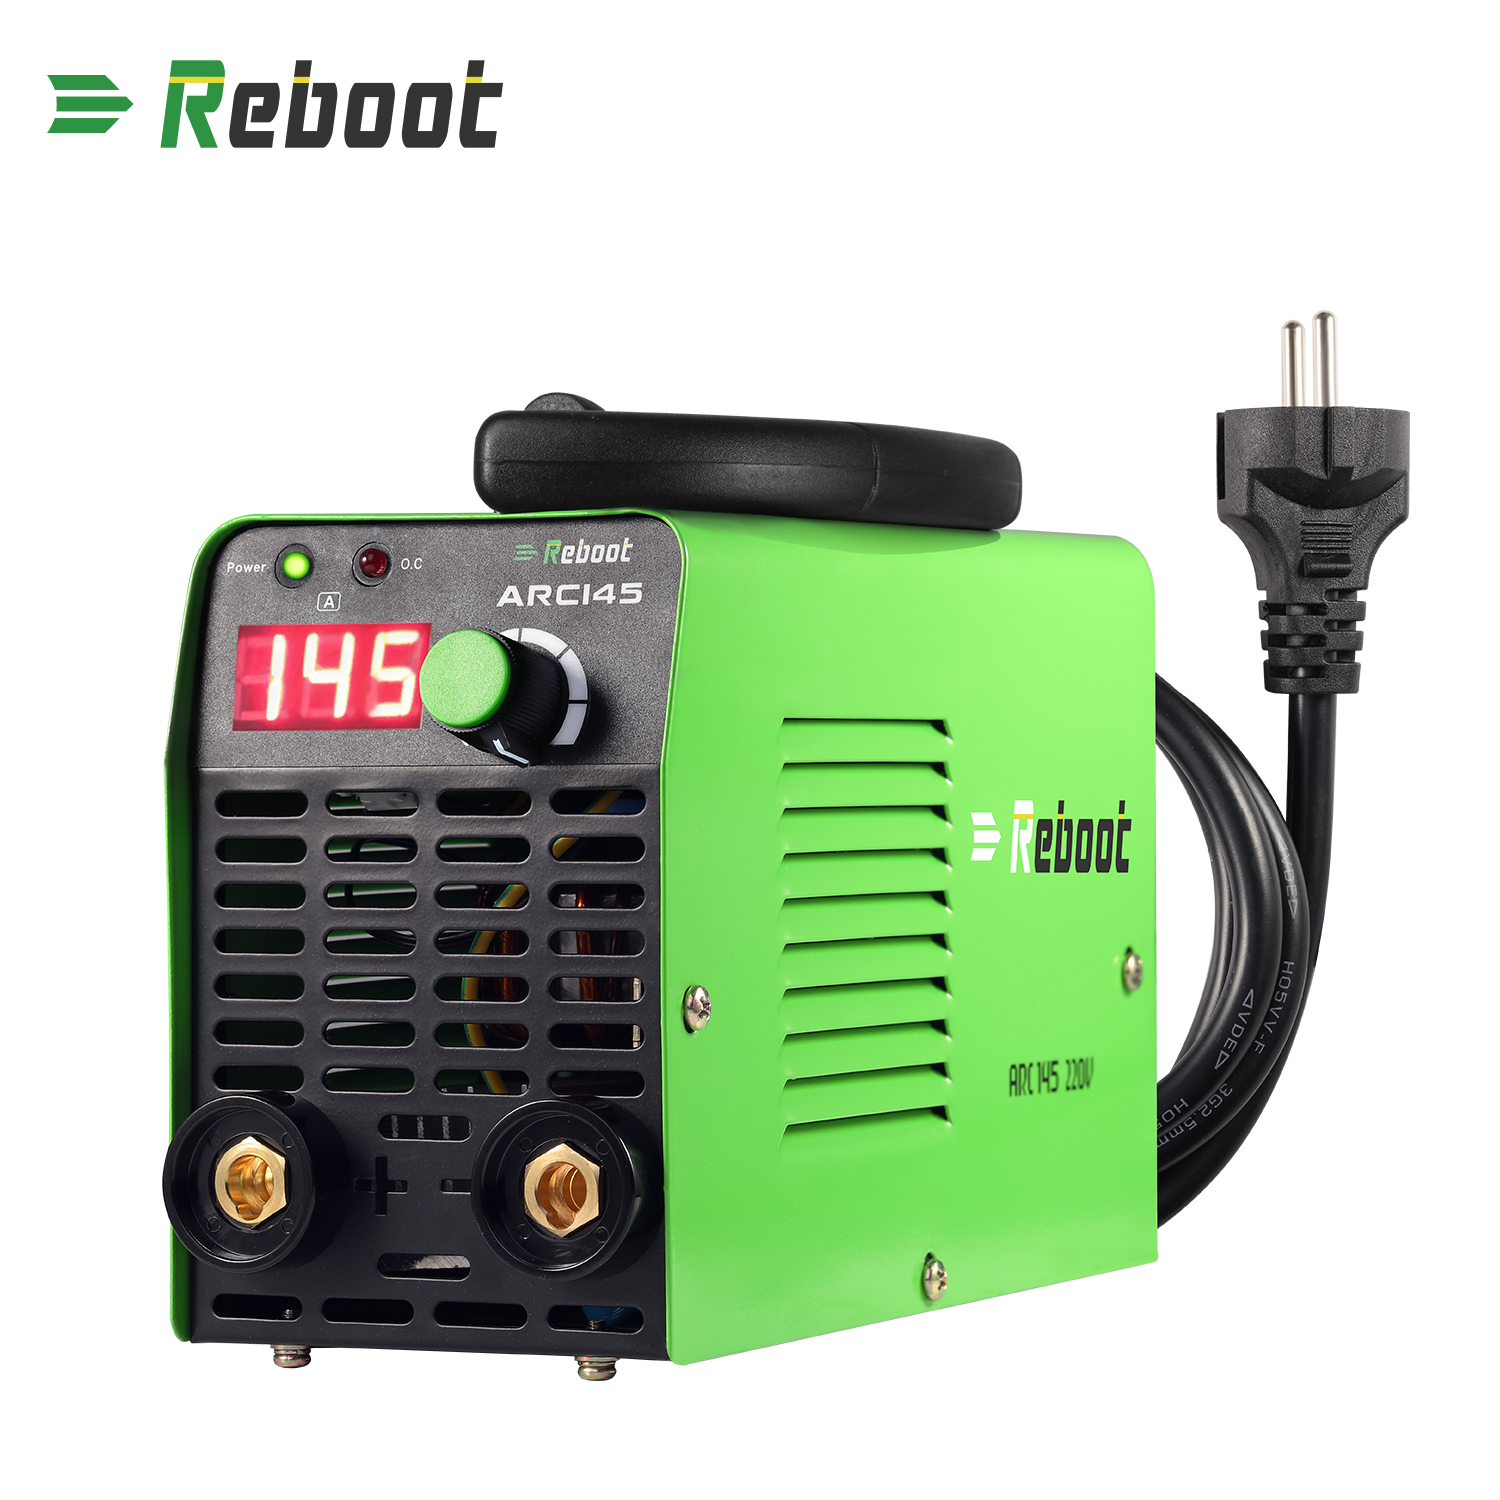 Stick Welder ARC Welding Machine 145A AC 110V/220V MMA Inverter Dual Volt Mini Welder Machine 1/16~1/8 Inch Electrode Portable